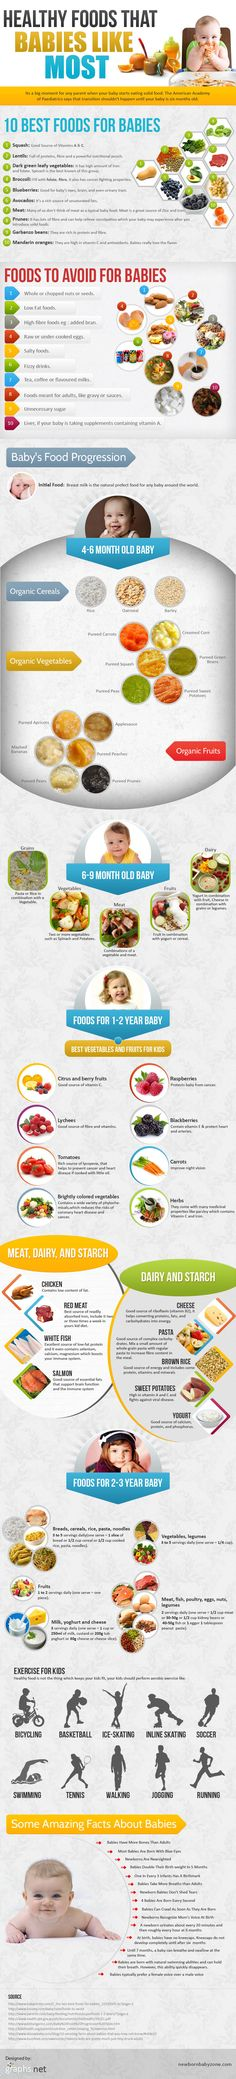 healthy-foods-that-babies-like-most-infographic-infographic